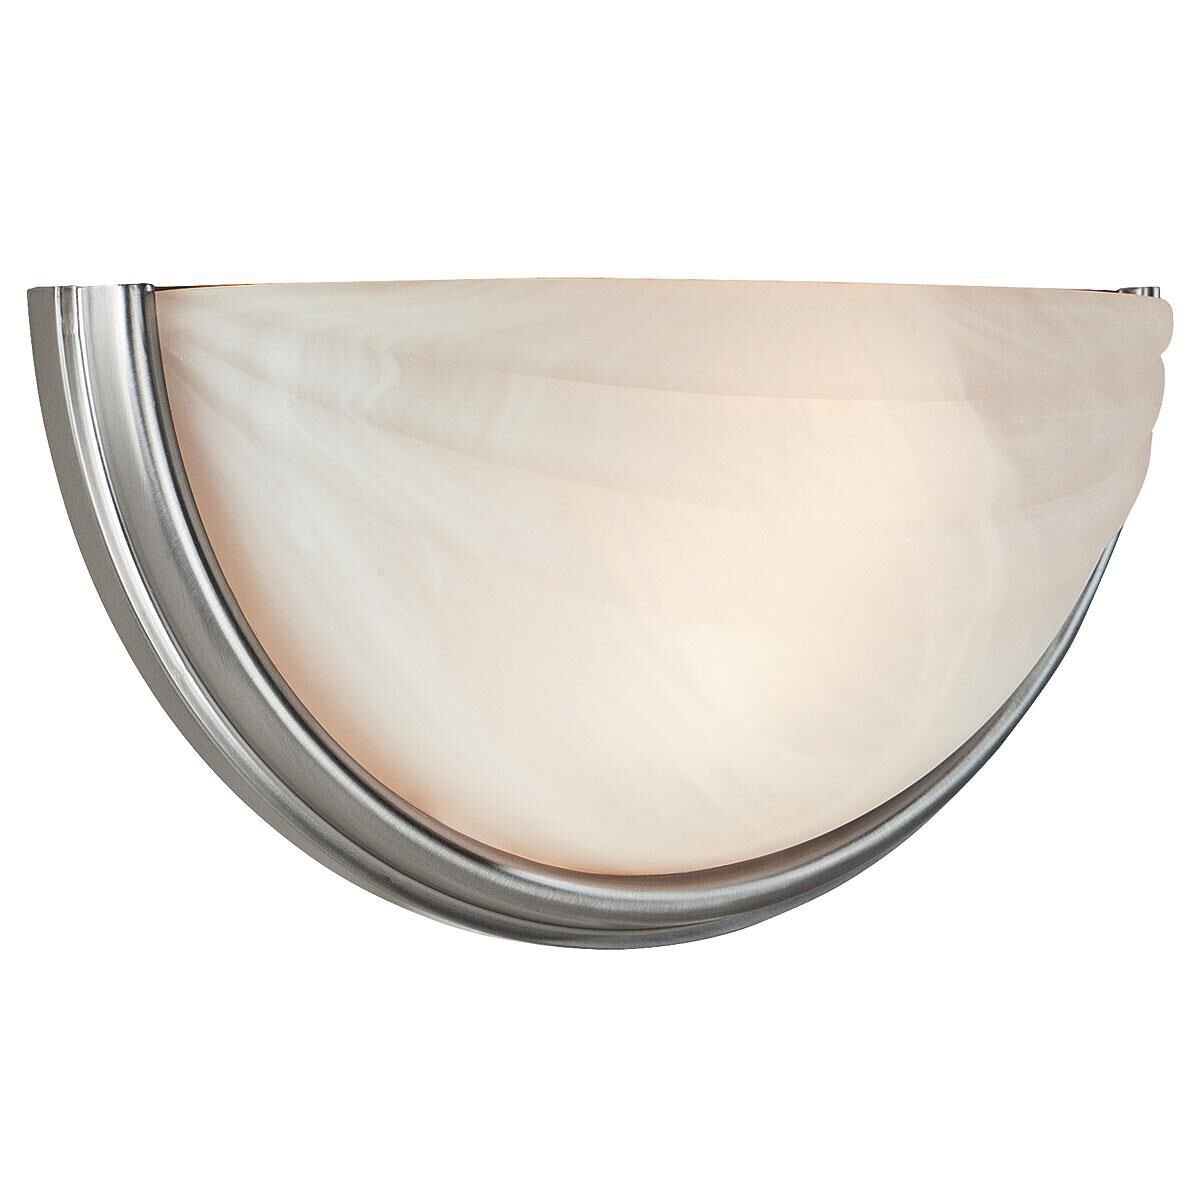 Access Lighting Crest 13 Inch Wall Sconce Crest 20635 SATALB Transitional